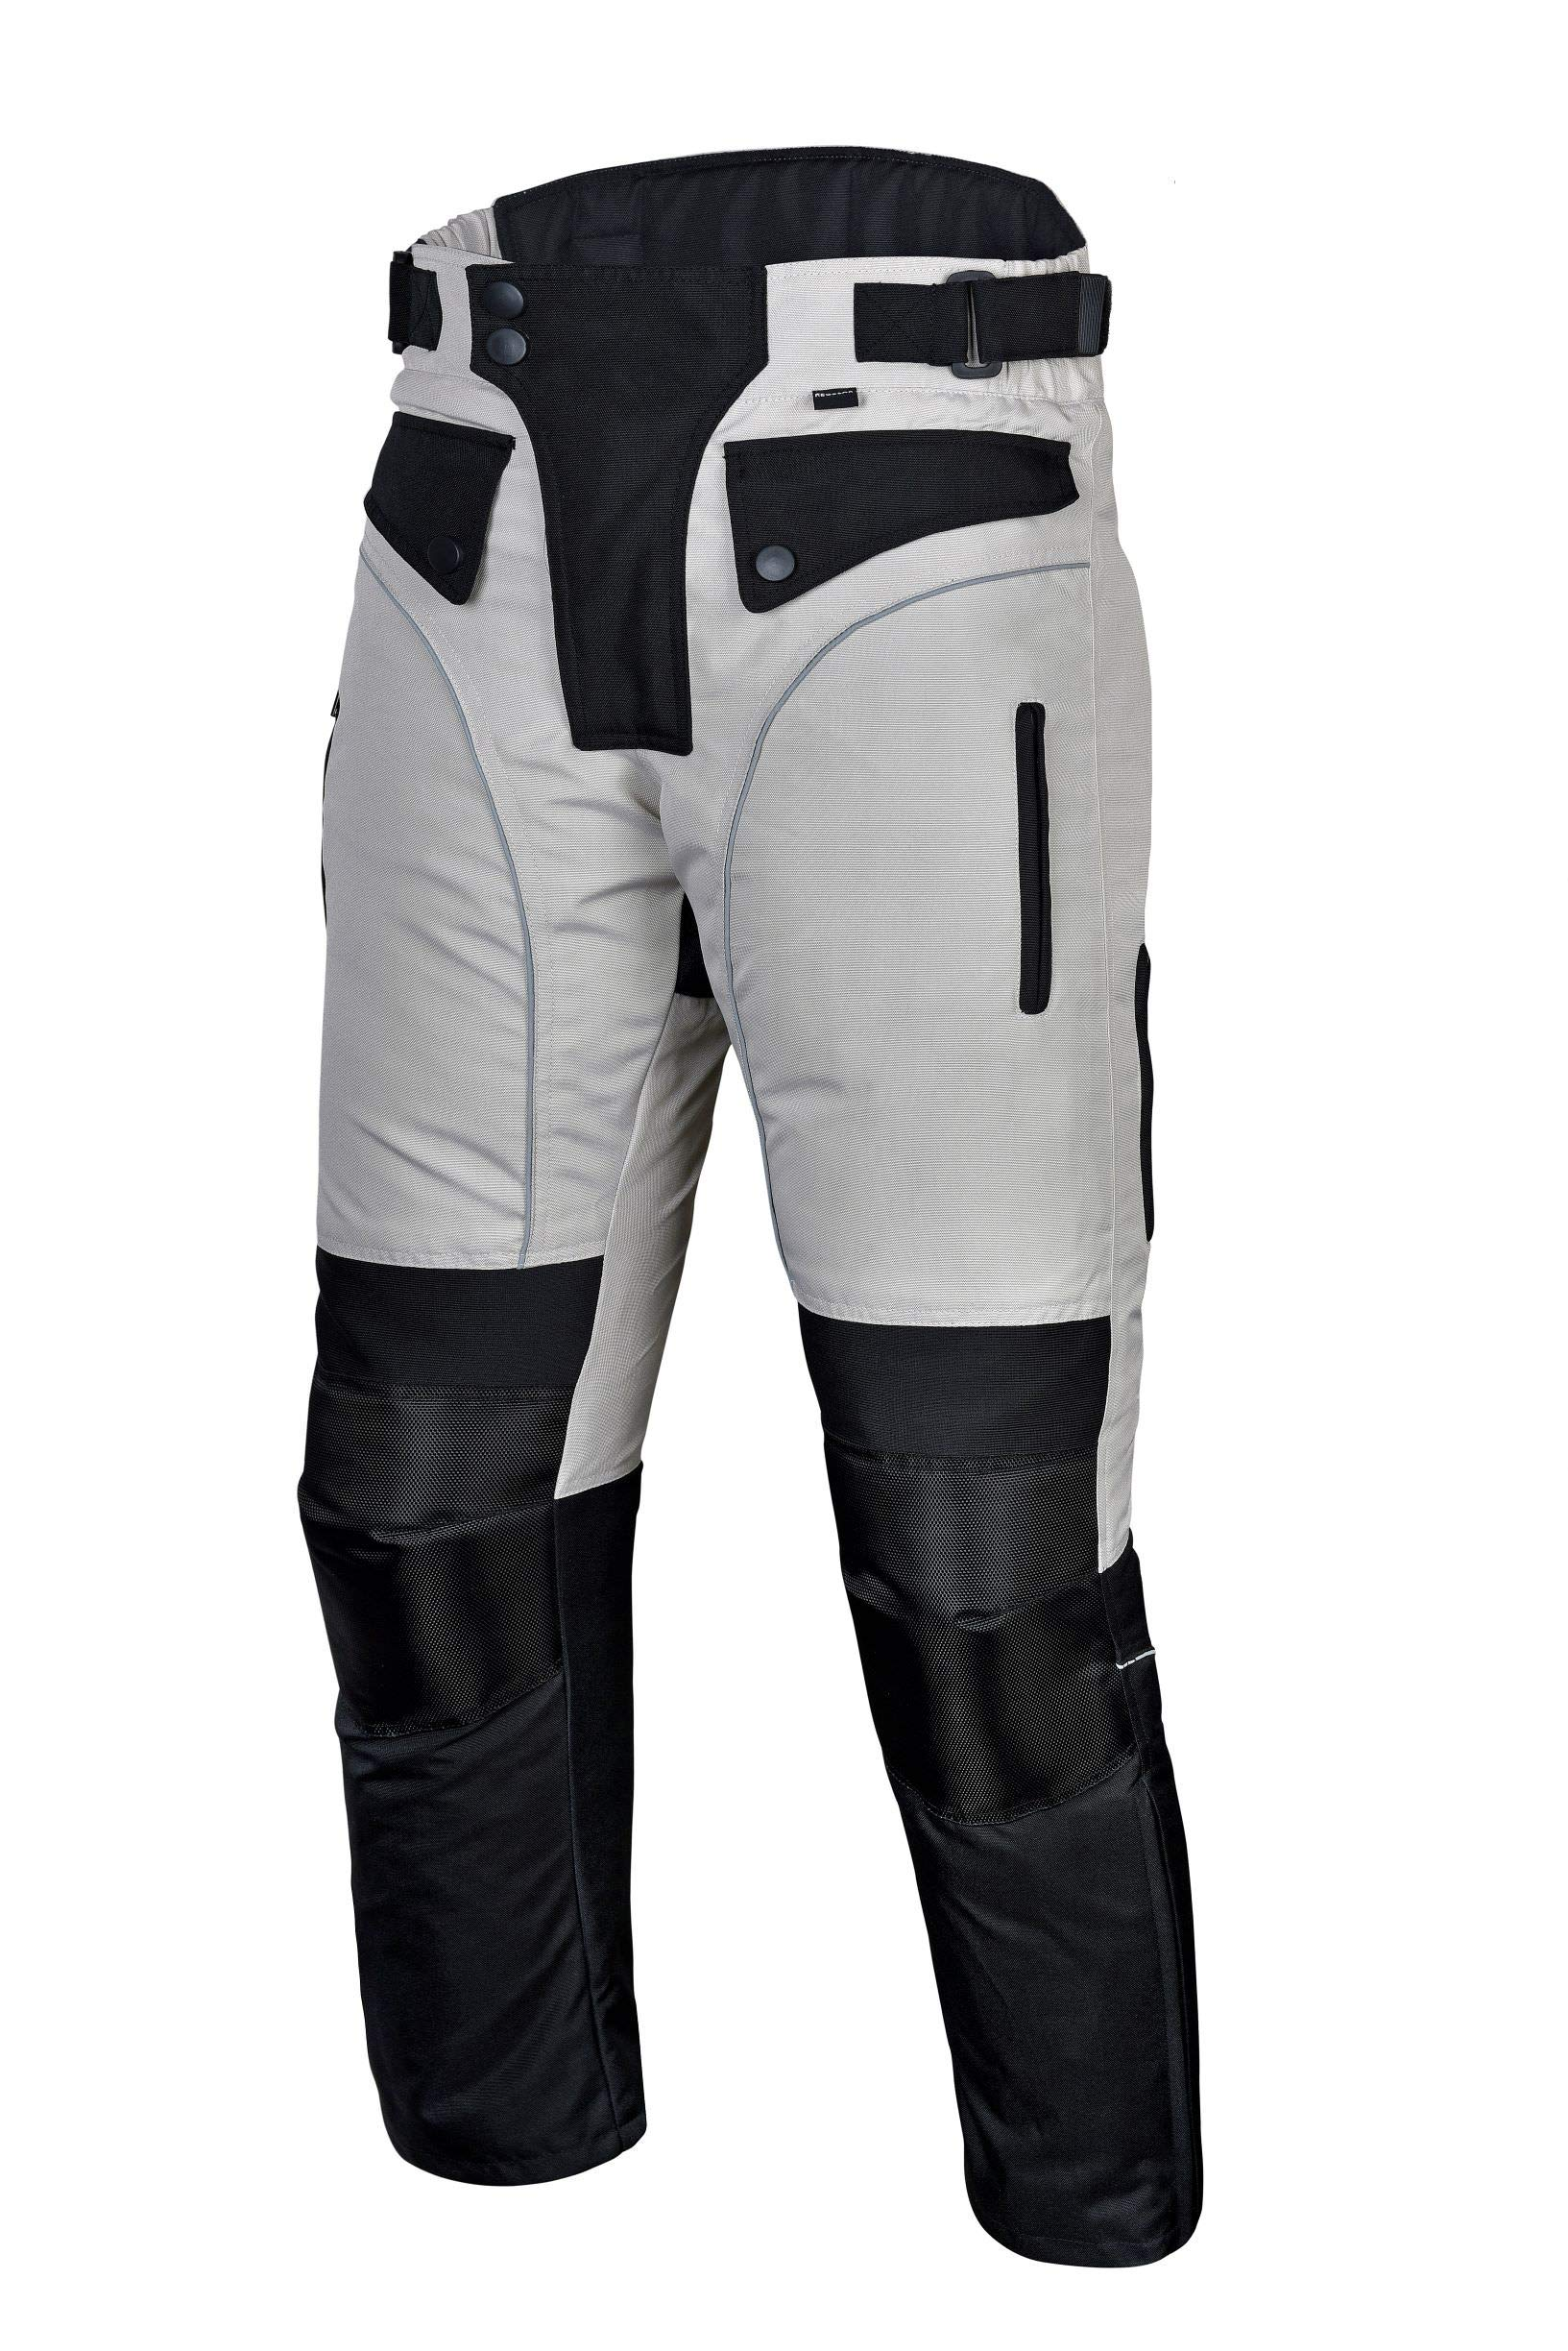 Mens Motorcycle Biker Waterproof, Windproof Riding Pants Gray with Removable CE Armor PT1 (4XL)